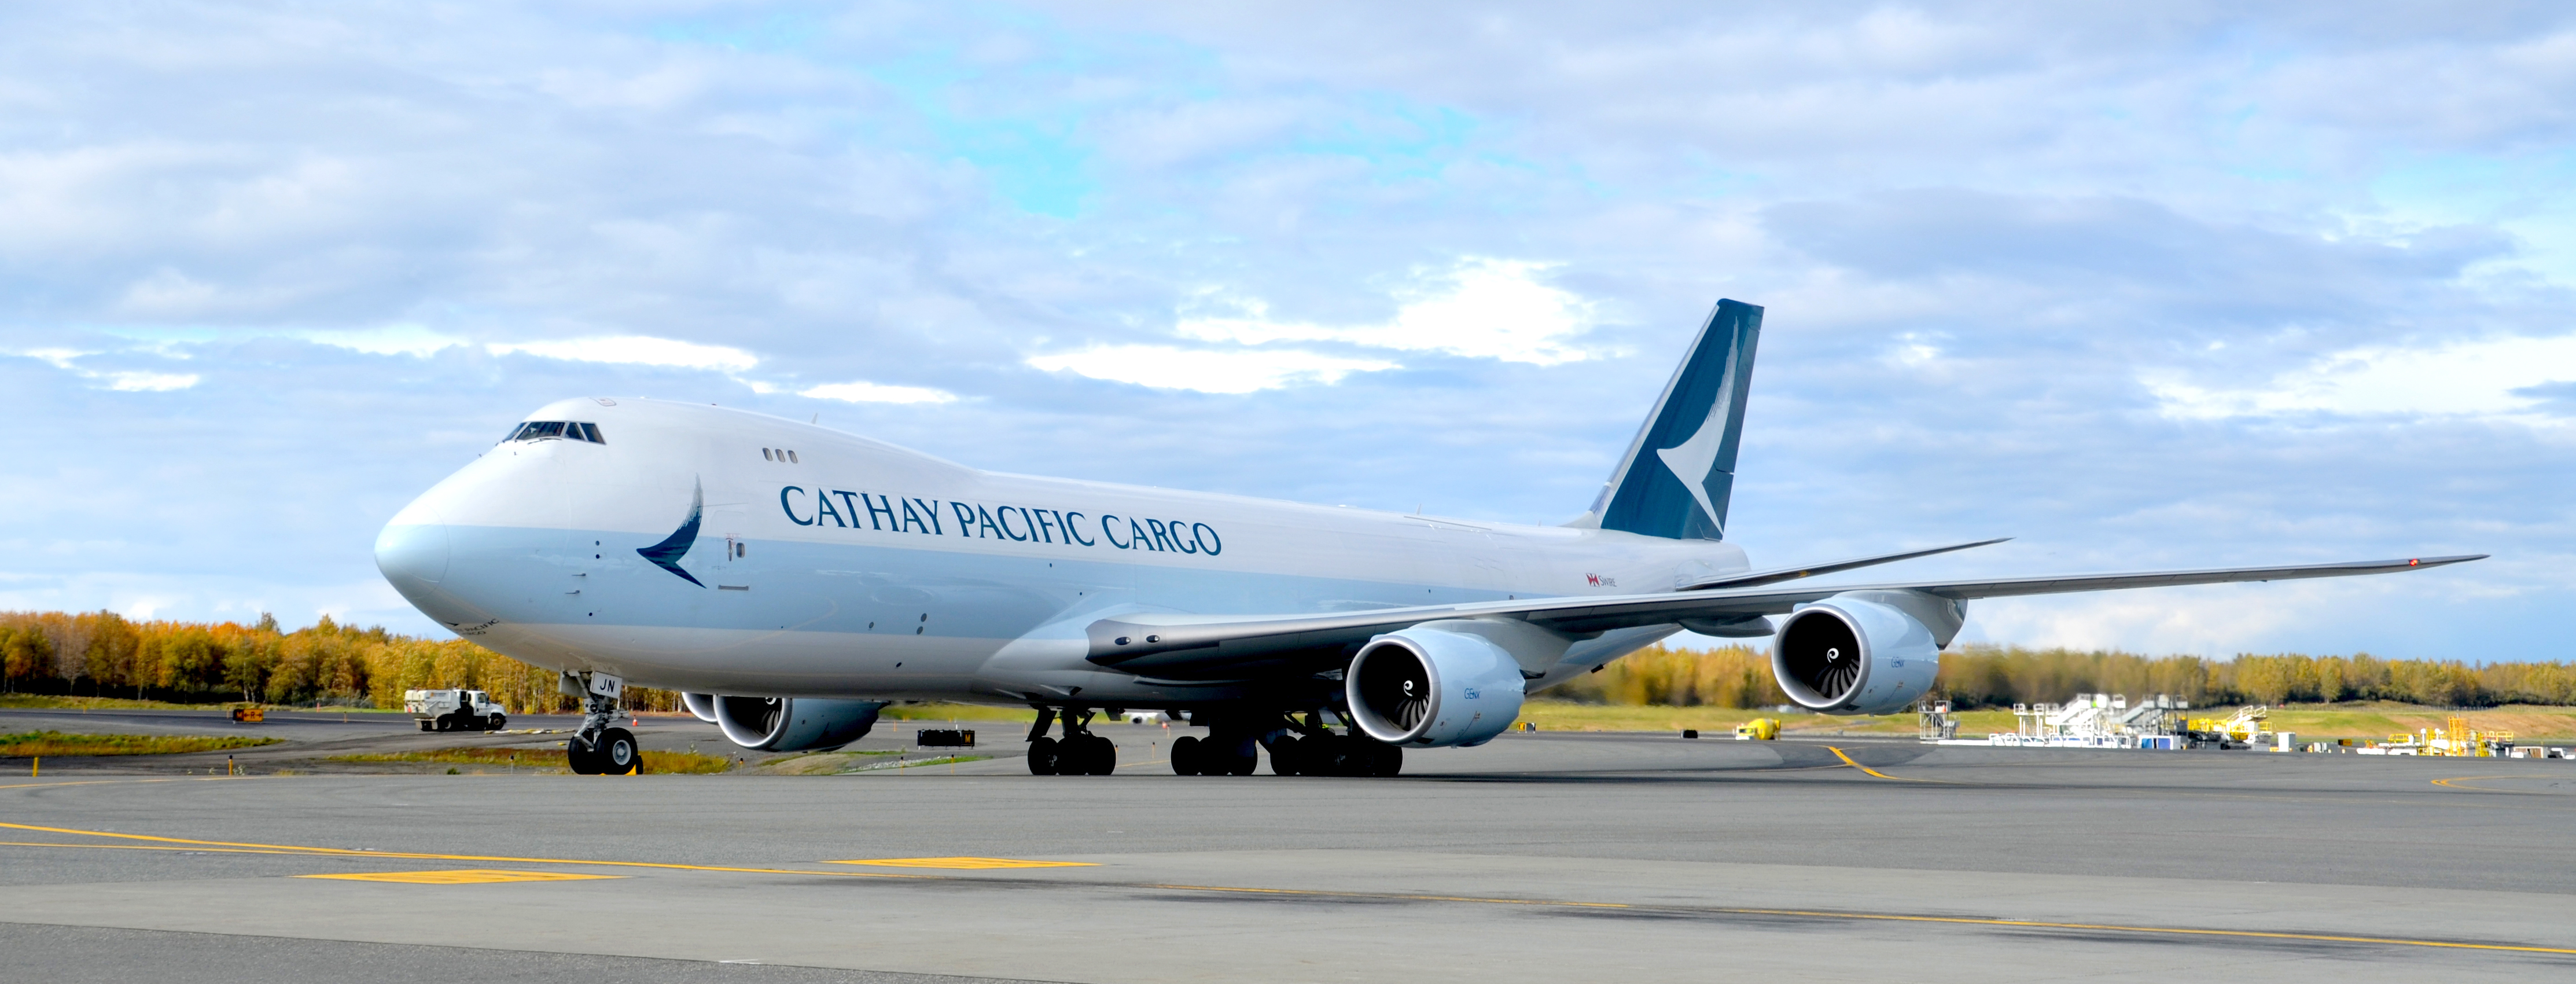 Cathay Pacific Airways expands its freighter services in Southwest Pacific with new weekly service to Brisbane West Wellcamp Airport